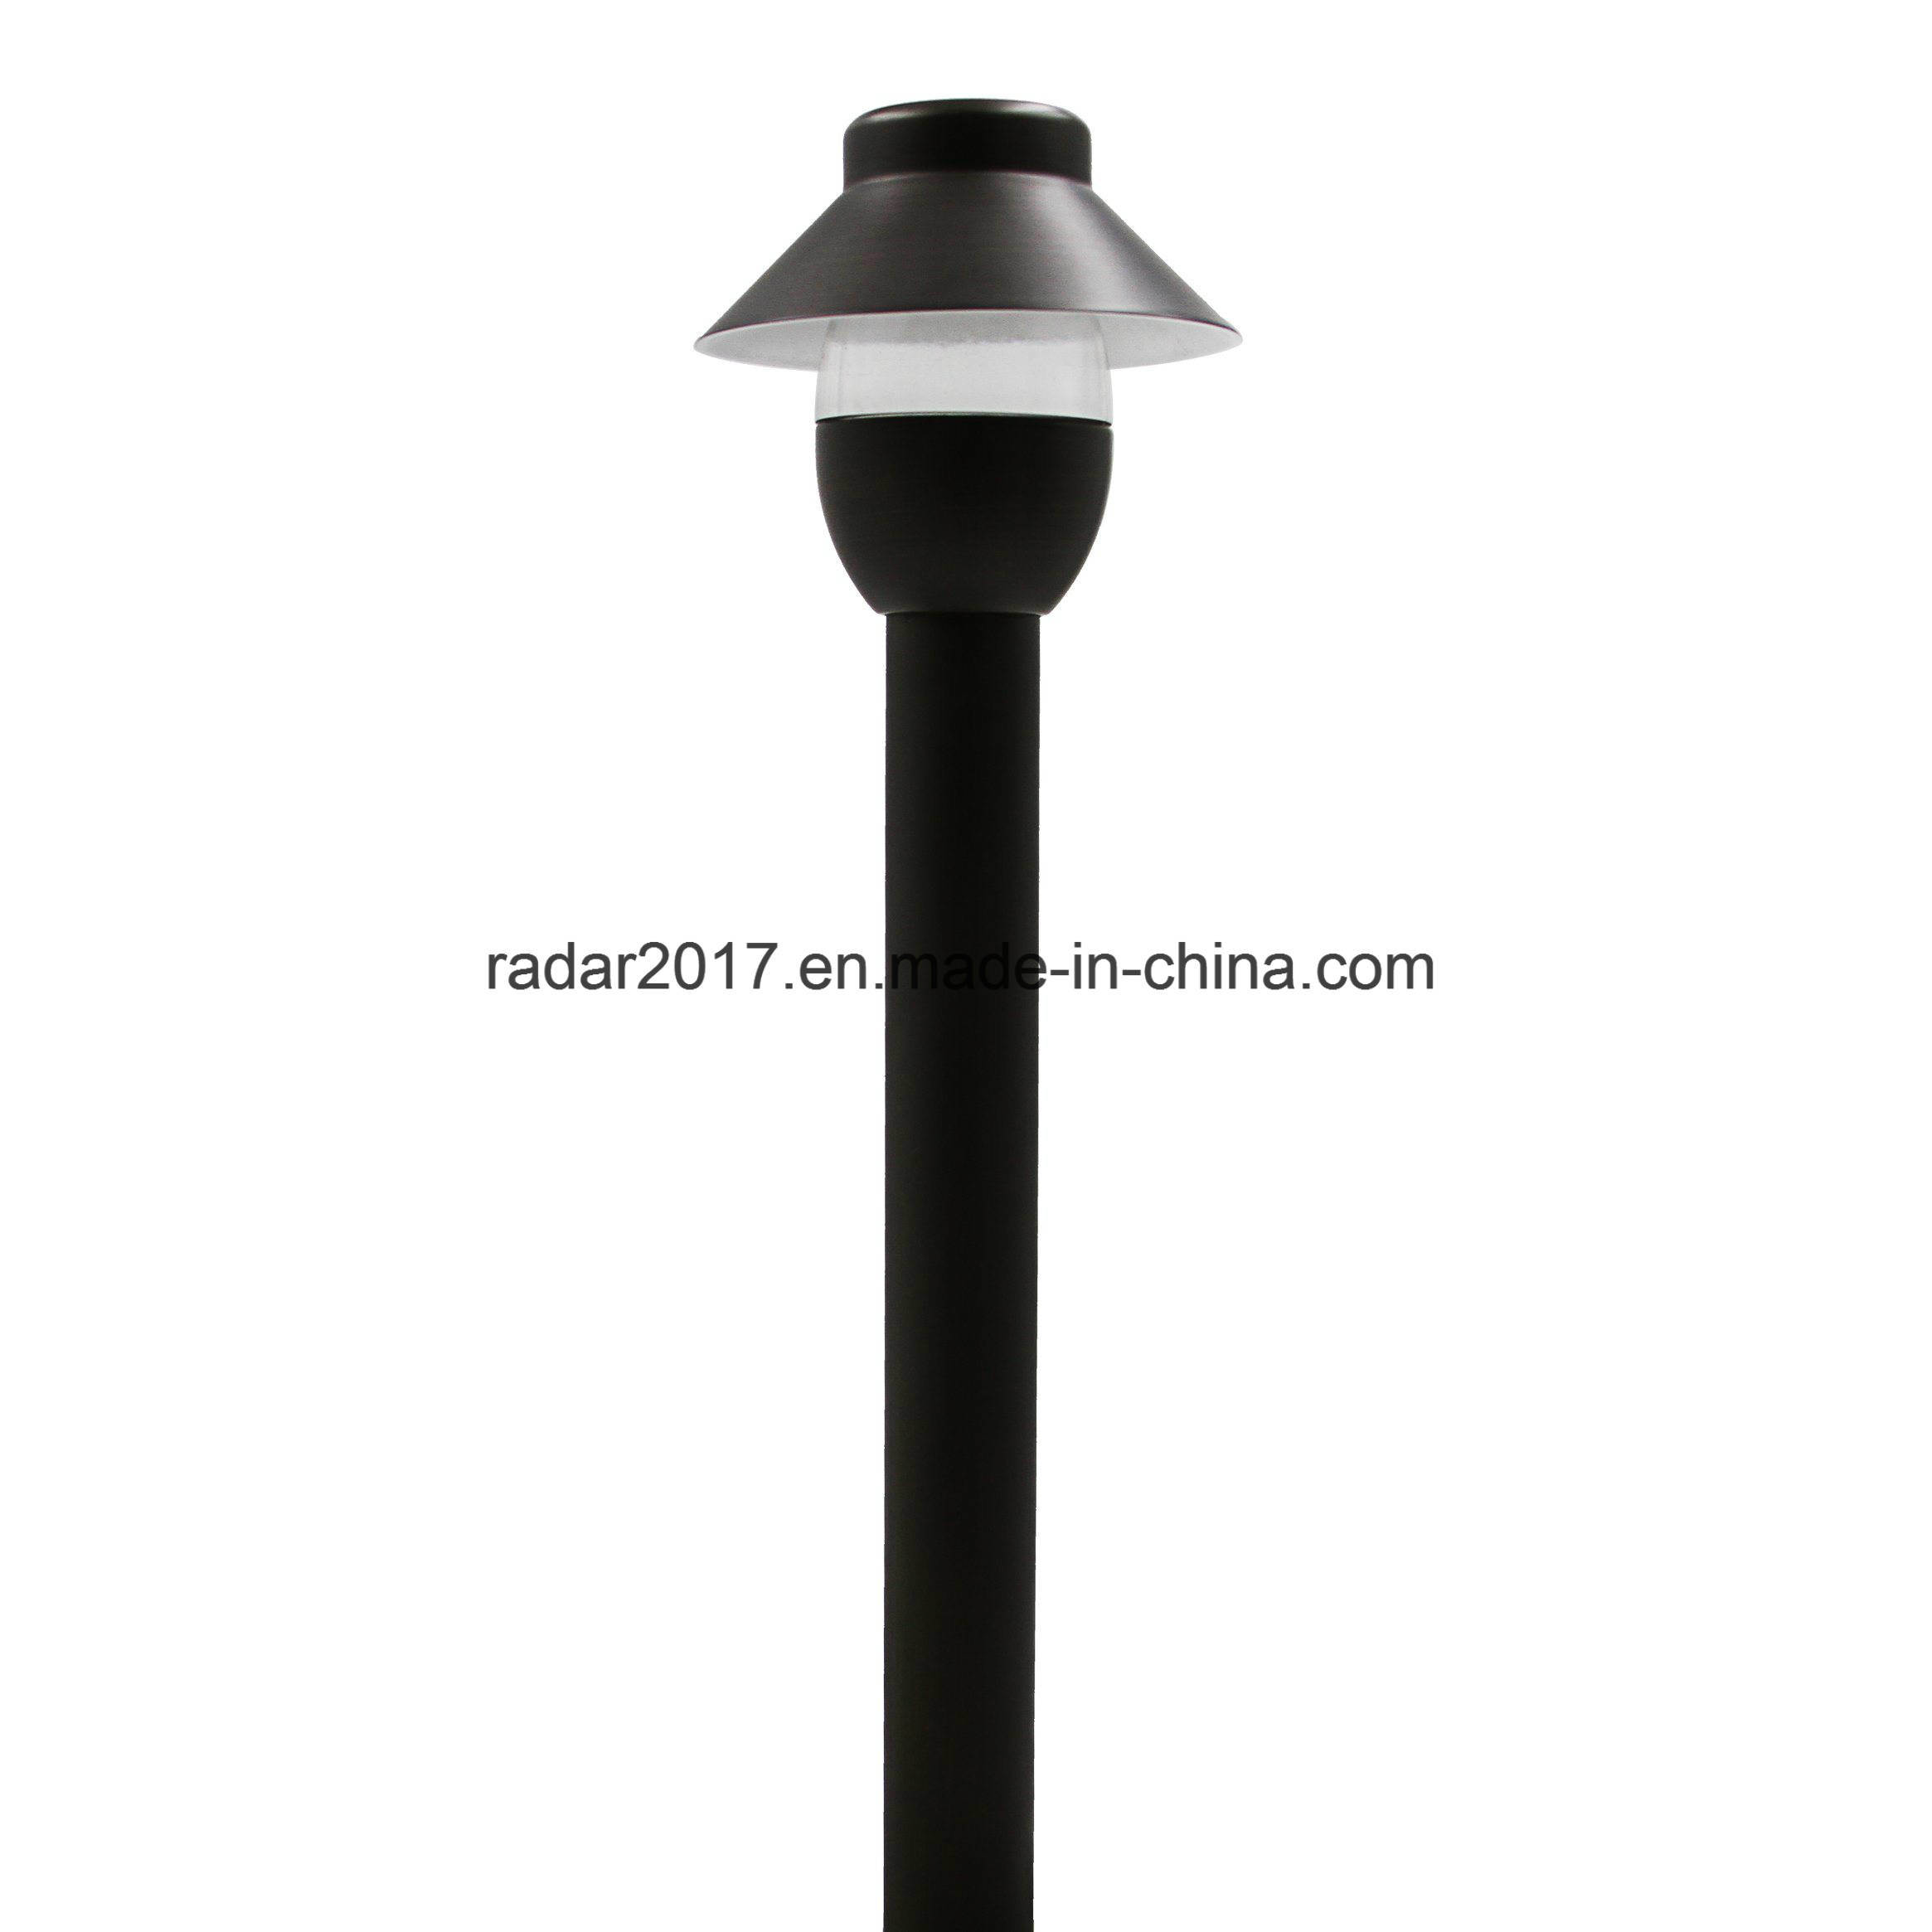 Landscape Lighting Fixture Down Light